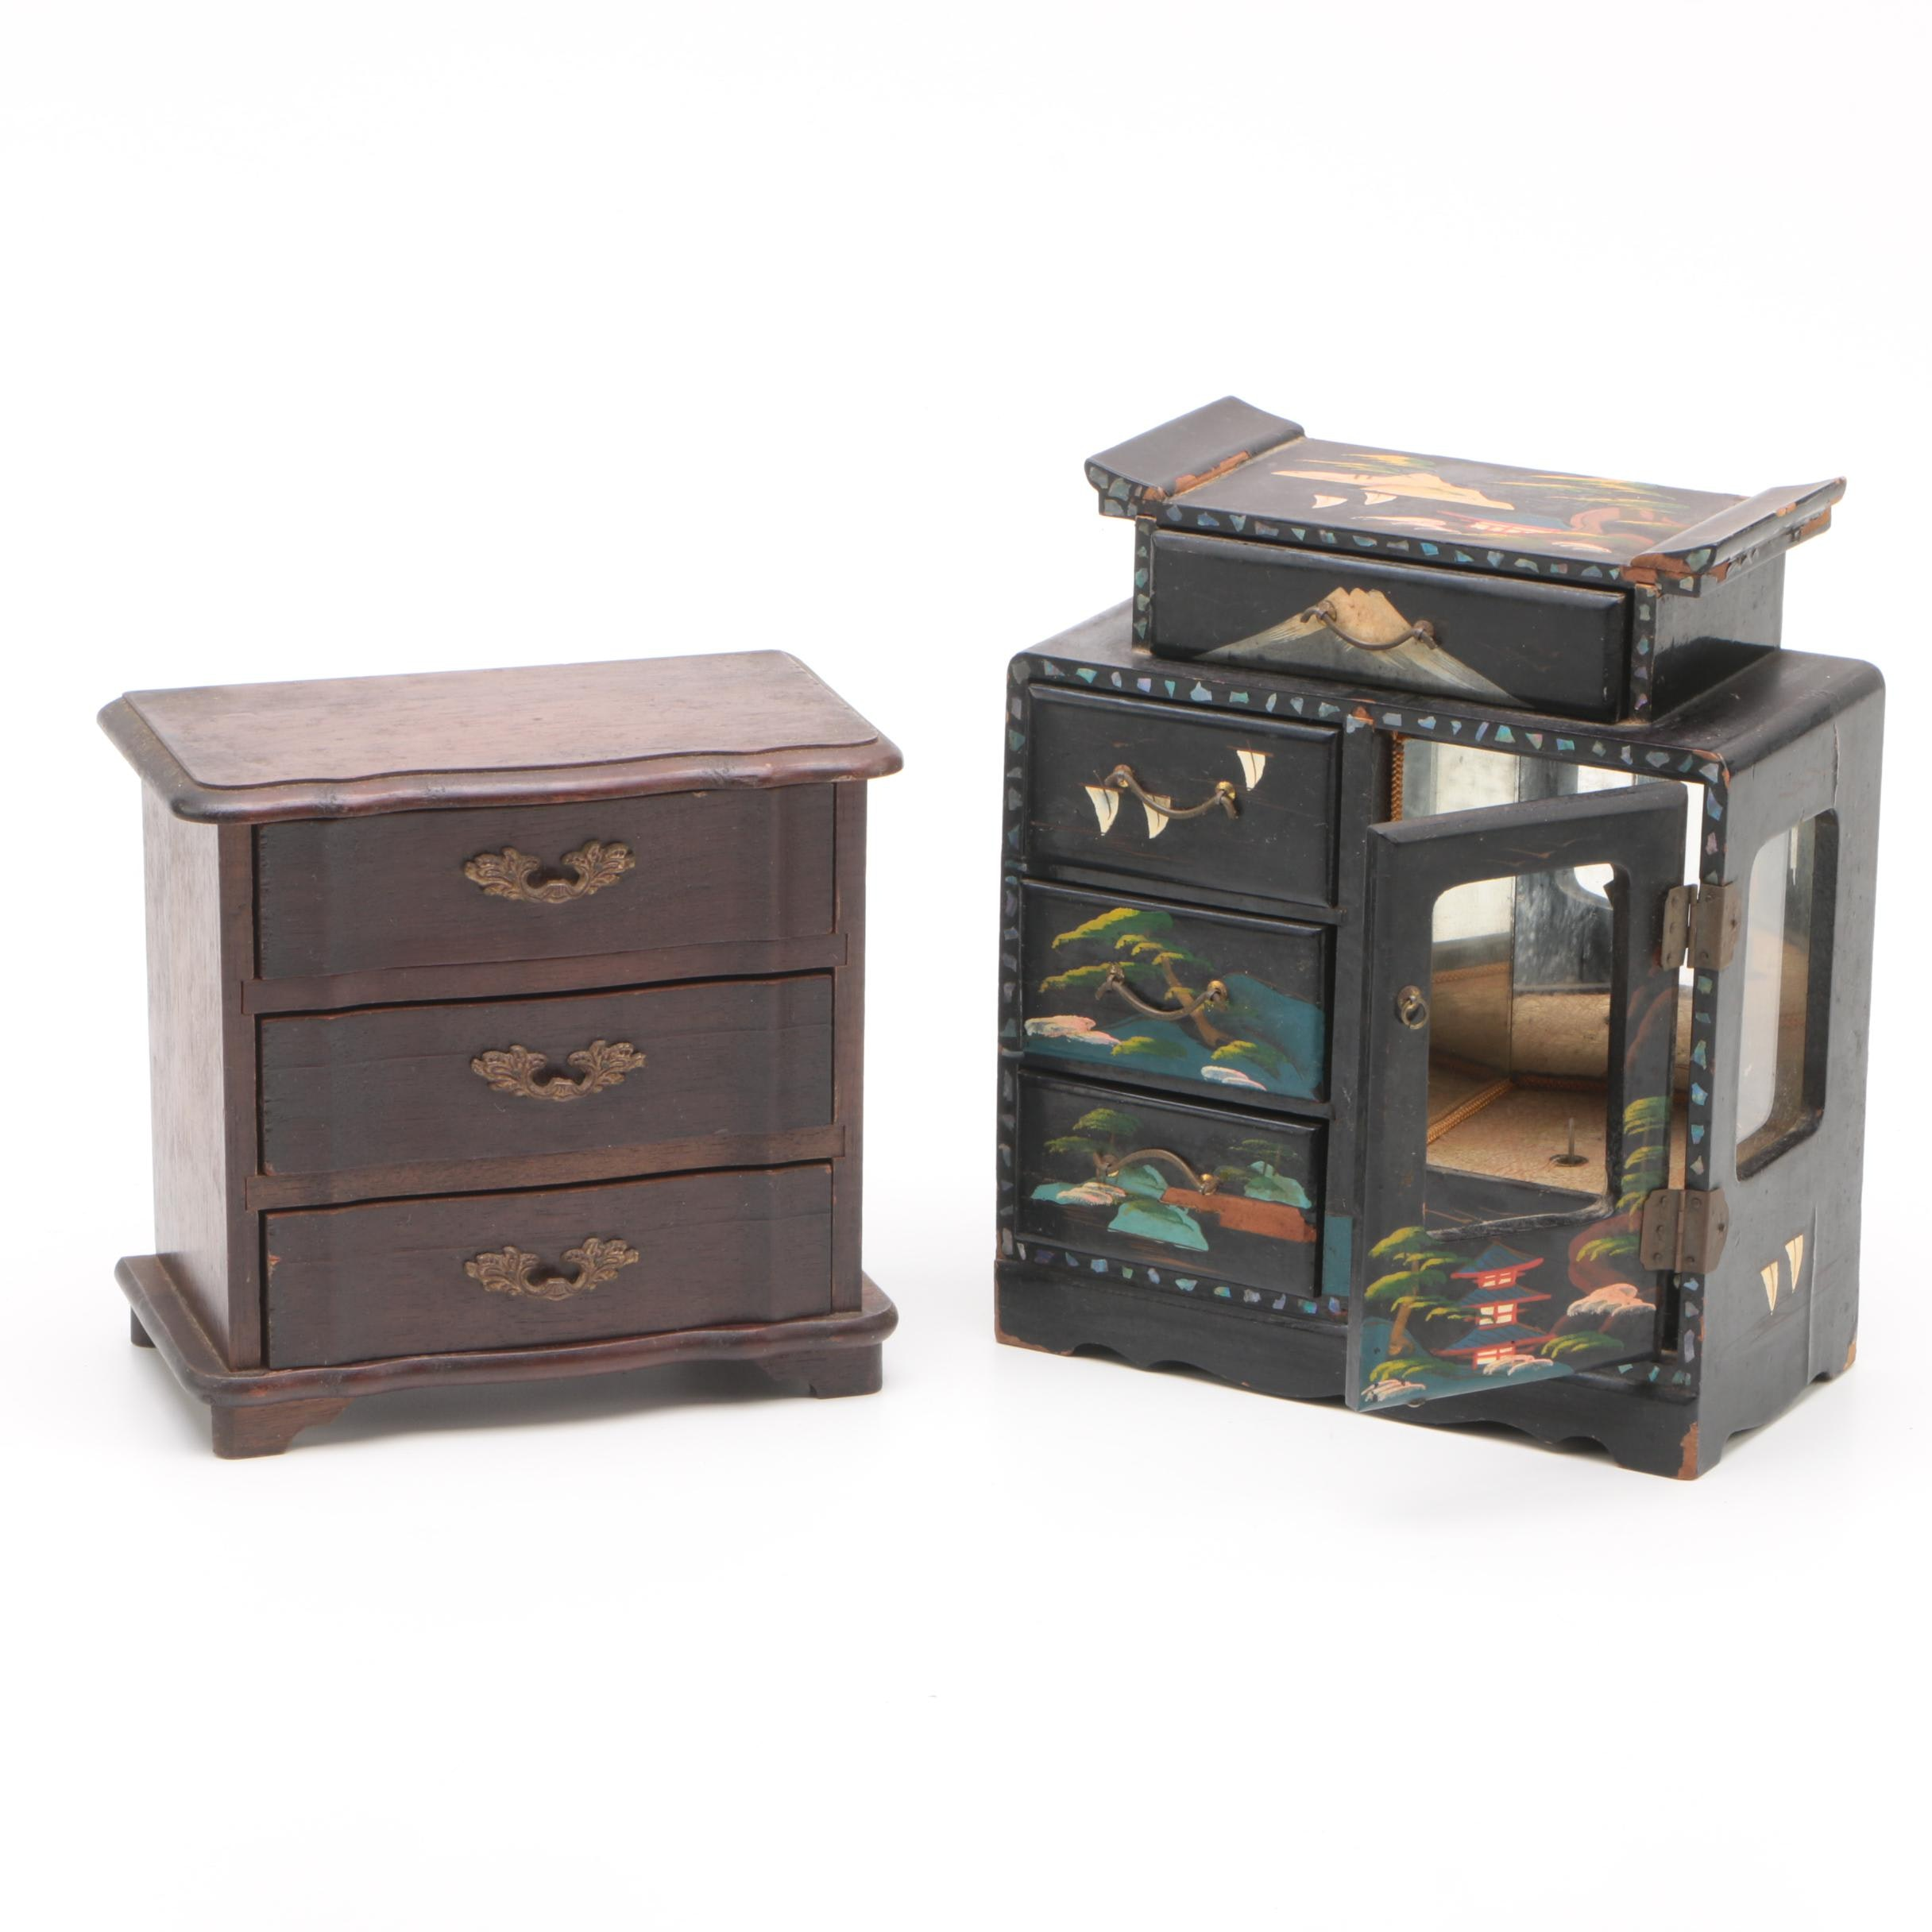 Japanese Black Lacquer Musical Jewelry Box with Vintage Wooden Jewelry Box